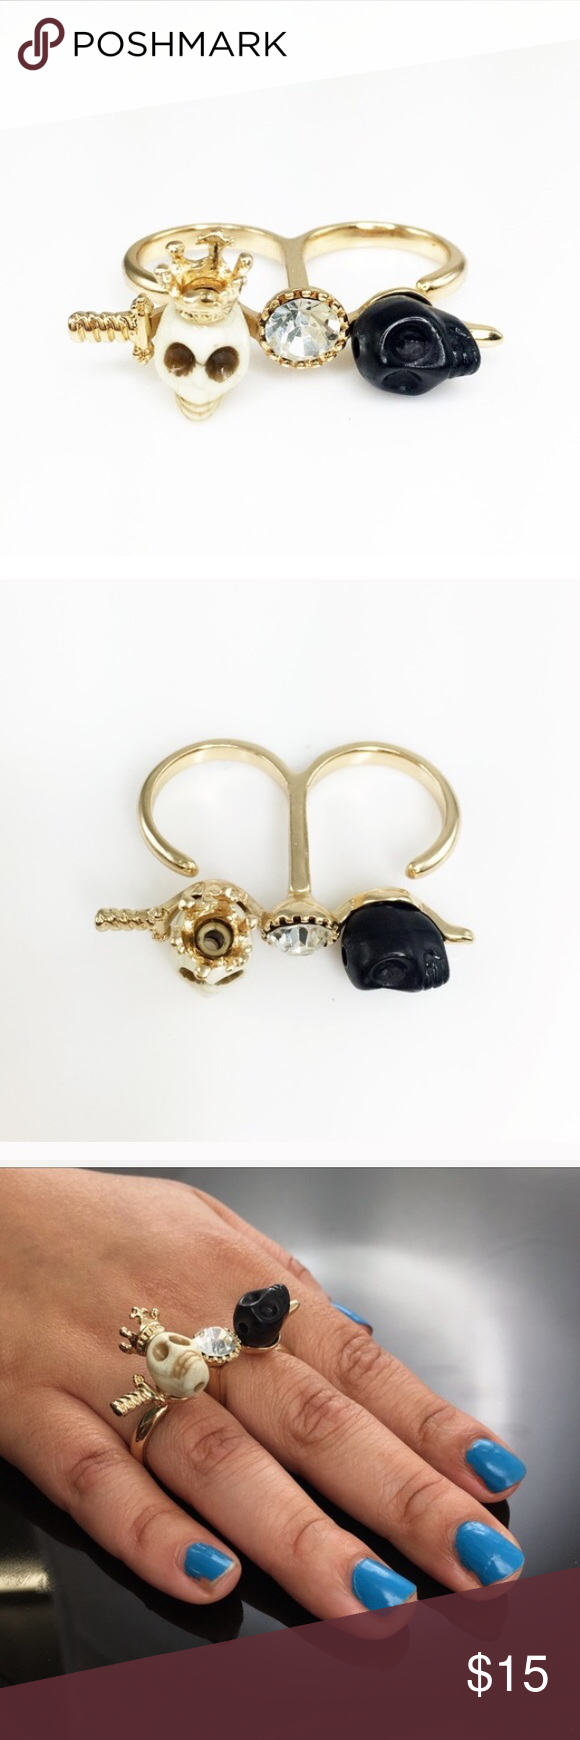 🆕Adia Kibur skull and crystal double ring Pictures by Adia Kibur. Beautiful skull/crystal and sword double ring. Size 7.5/8. Be stylish this halloween with this darling piece. Adia Kibur Jewelry Rings